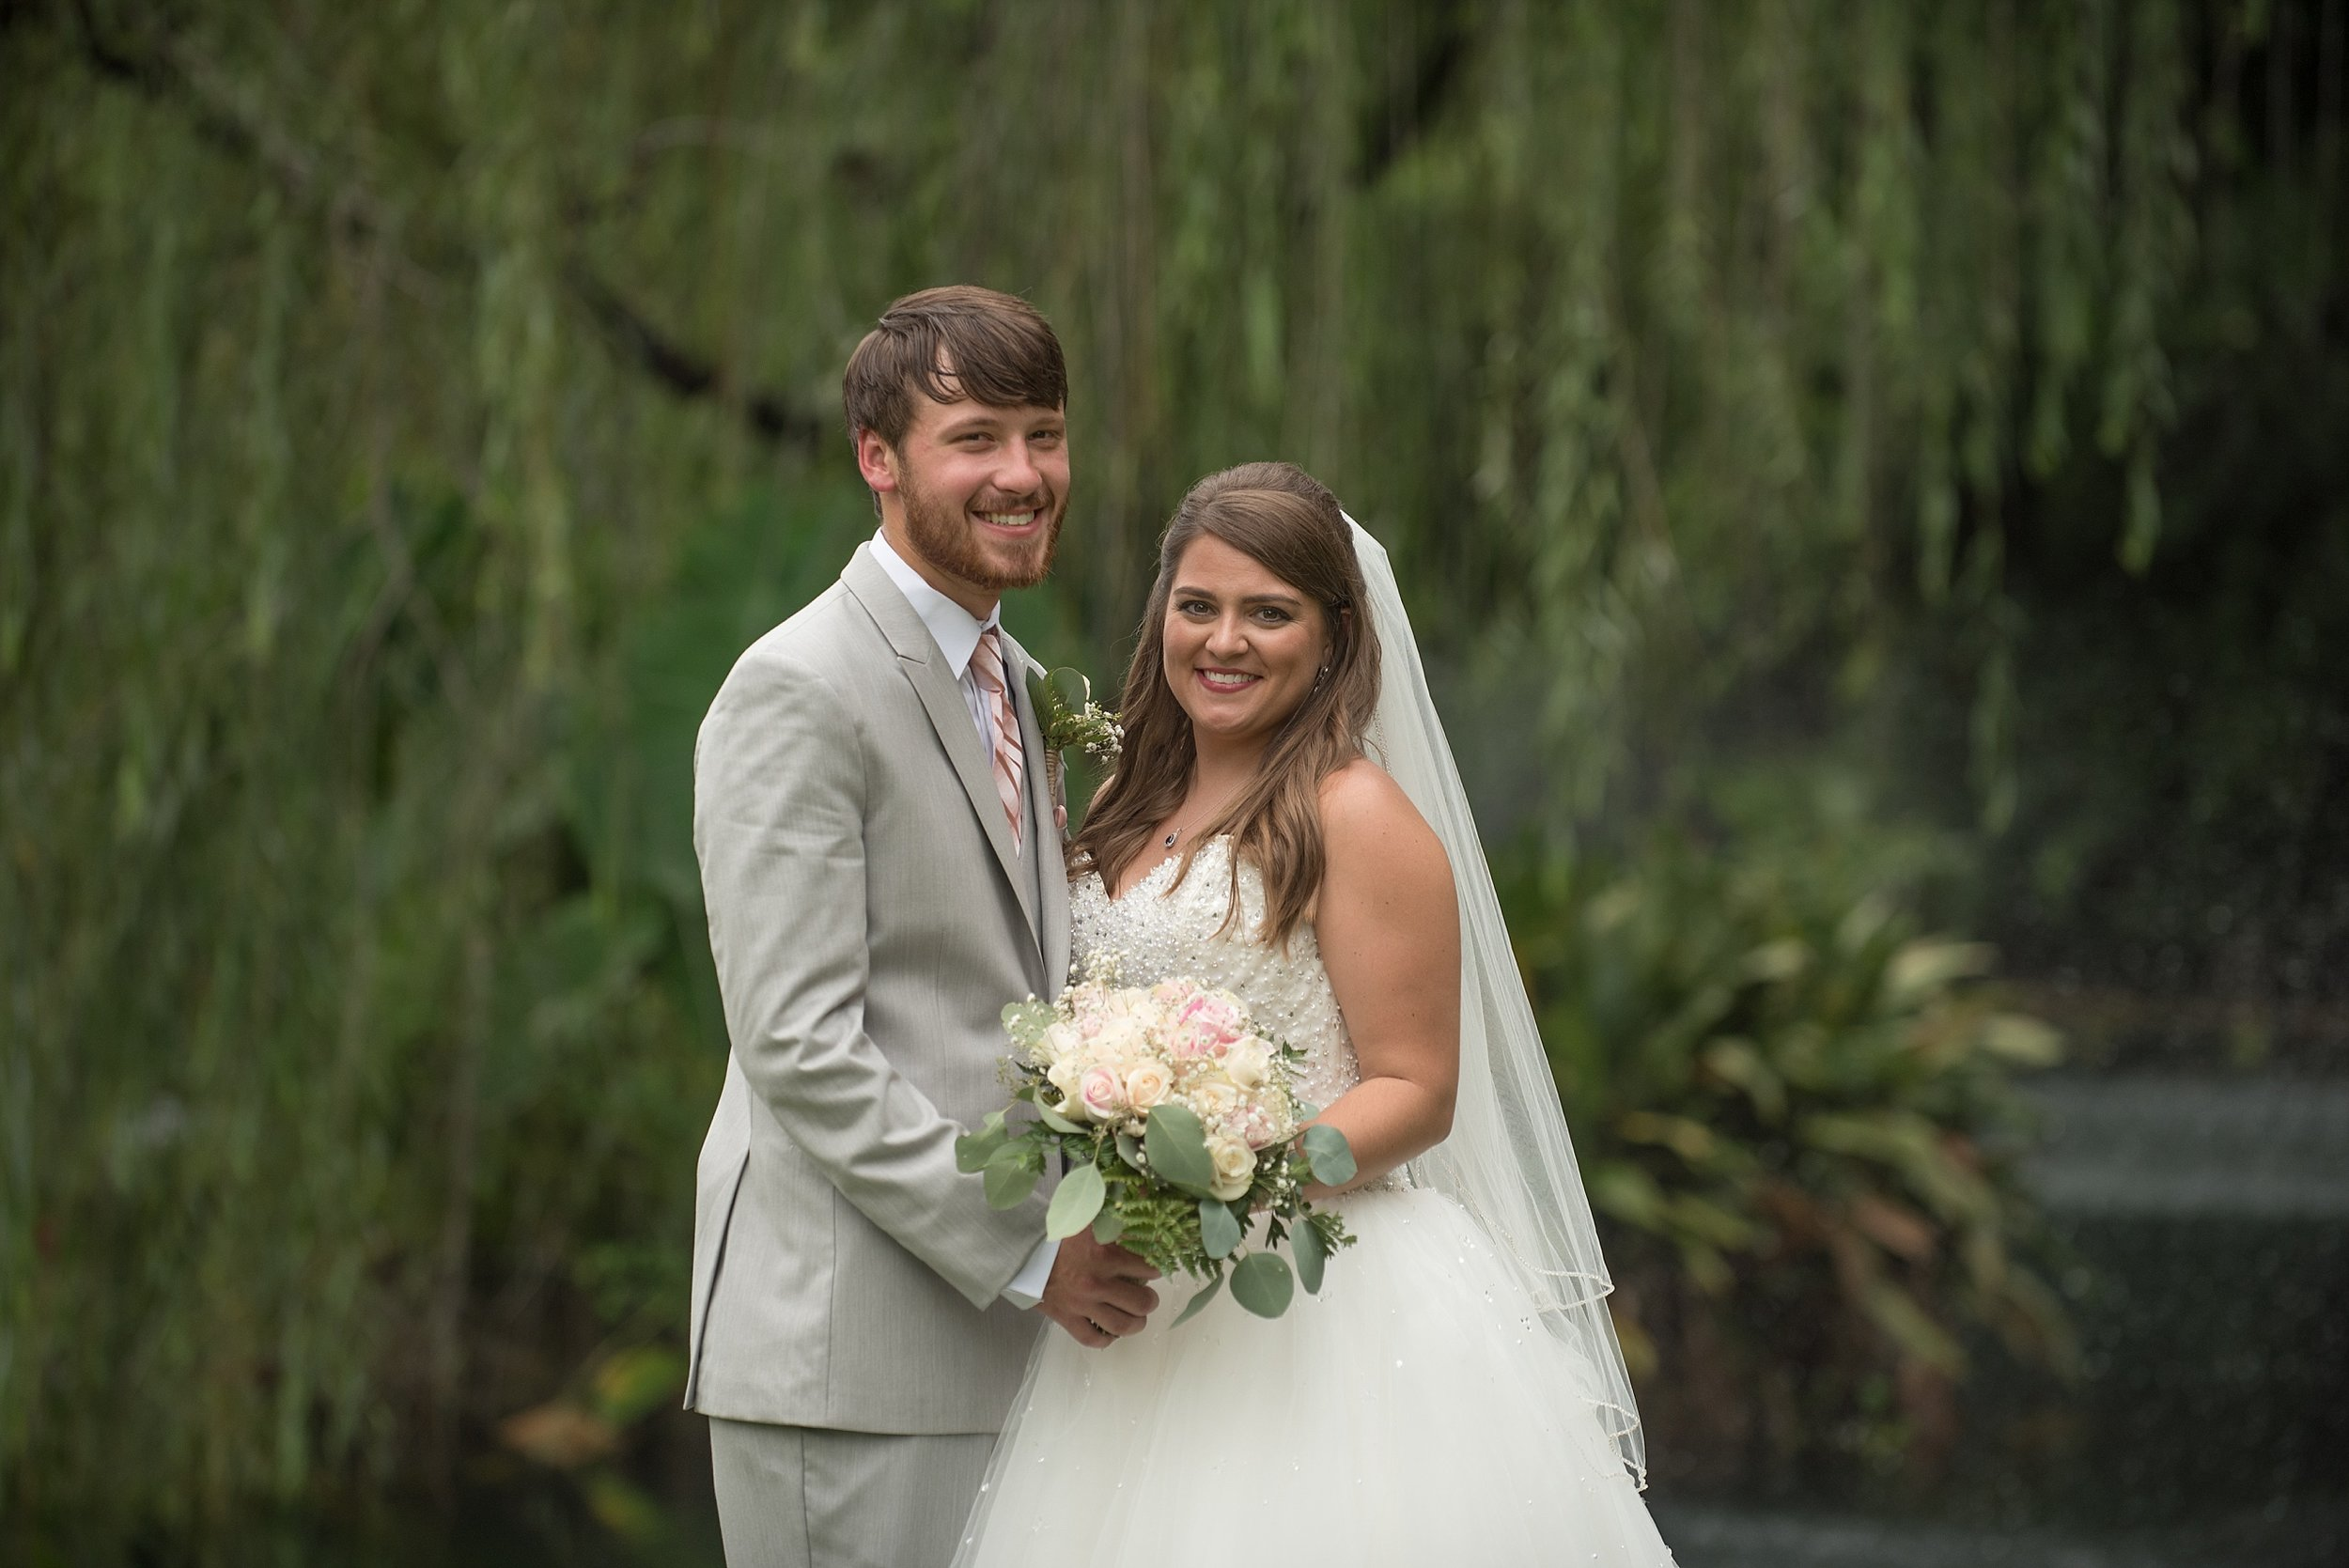 Brides in white sequin ballgown and groom in gray tuxedo hold a beautiful bouquet of eucalyptus and pink roses